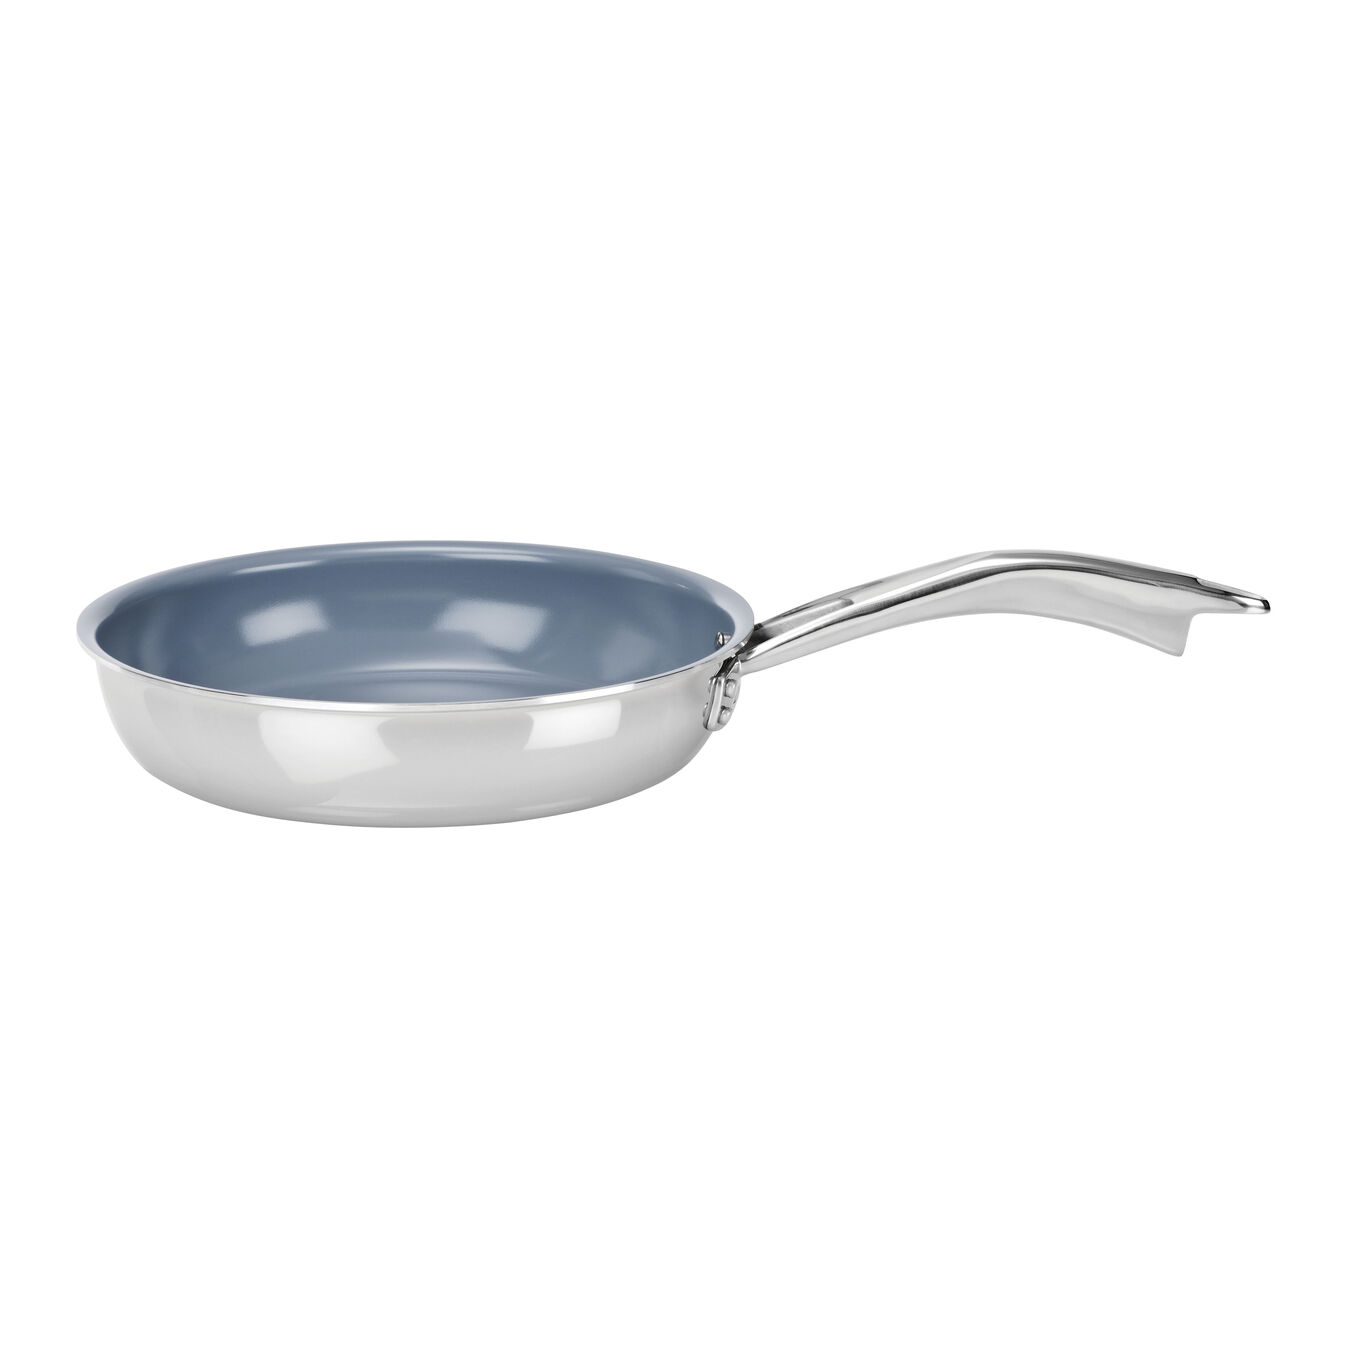 26 cm / 10 inch 18/10 Stainless Steel Frying pan,,large 1